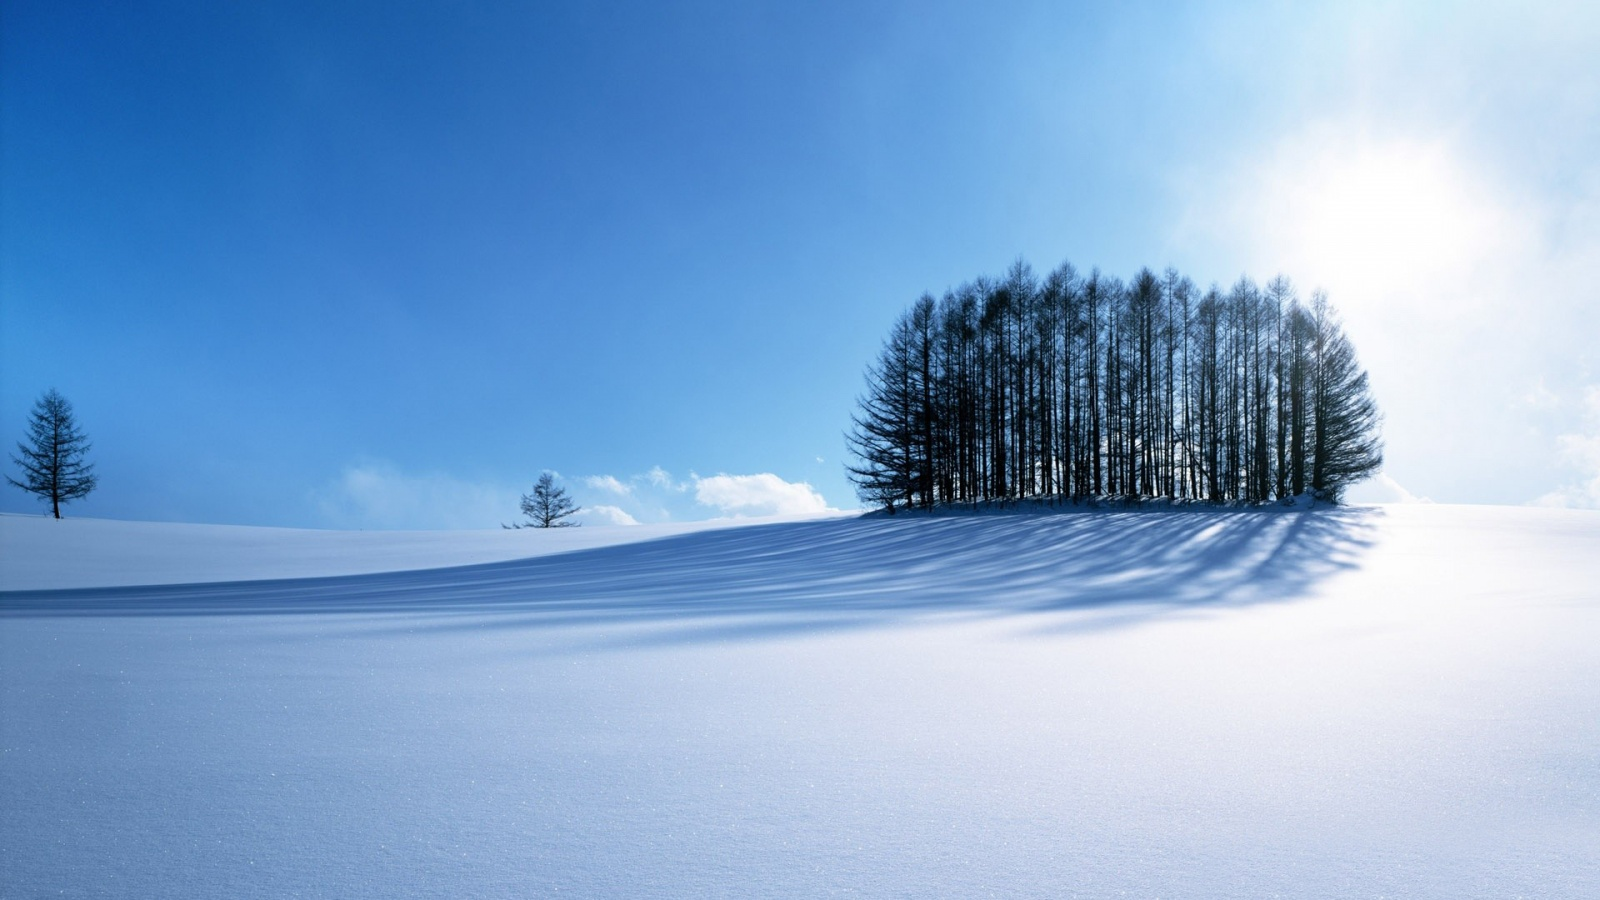 winter_scenery-1600x900.jpg